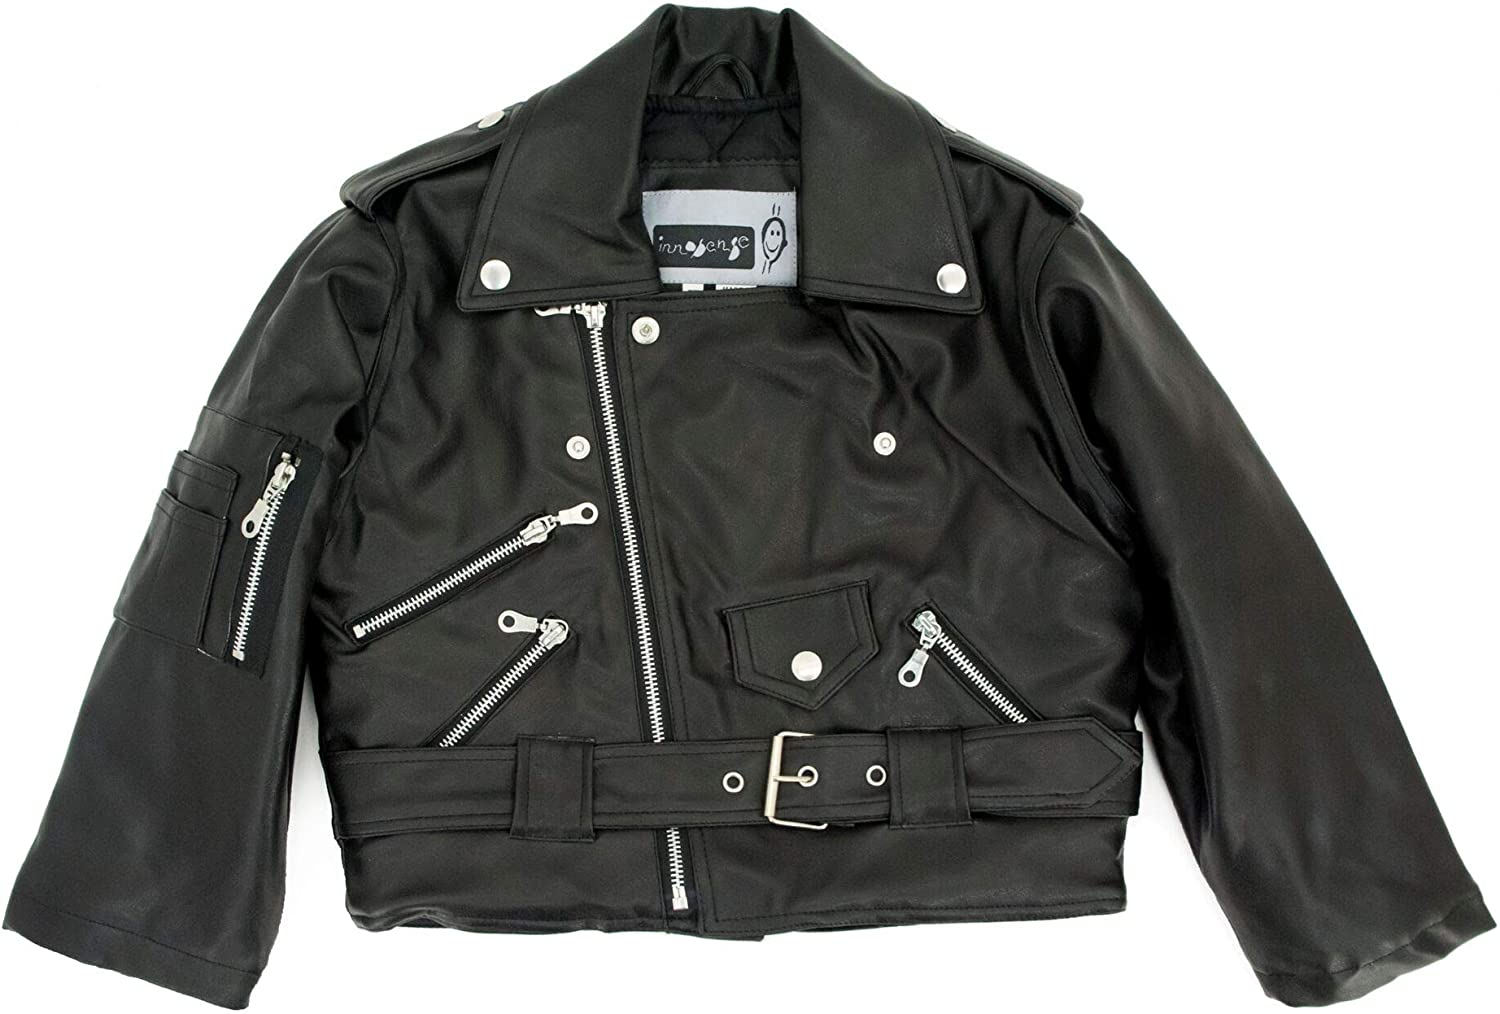 Cameleon Kid's Motorcycle Jacket by Rugged Rare